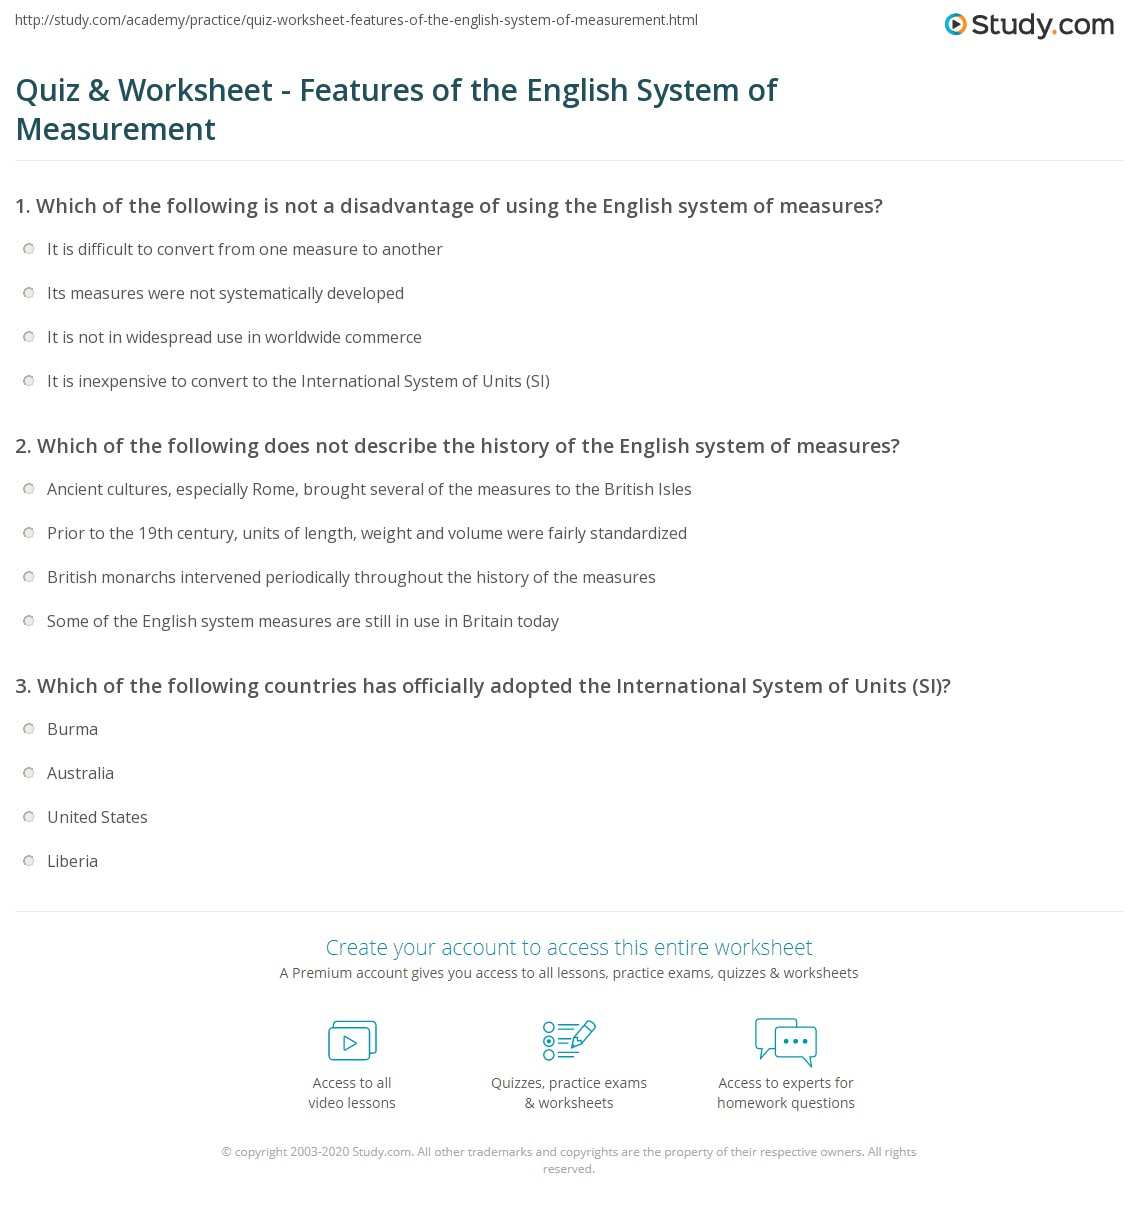 Quiz W Ksheet Fe Tures Of English System Of Me Surement